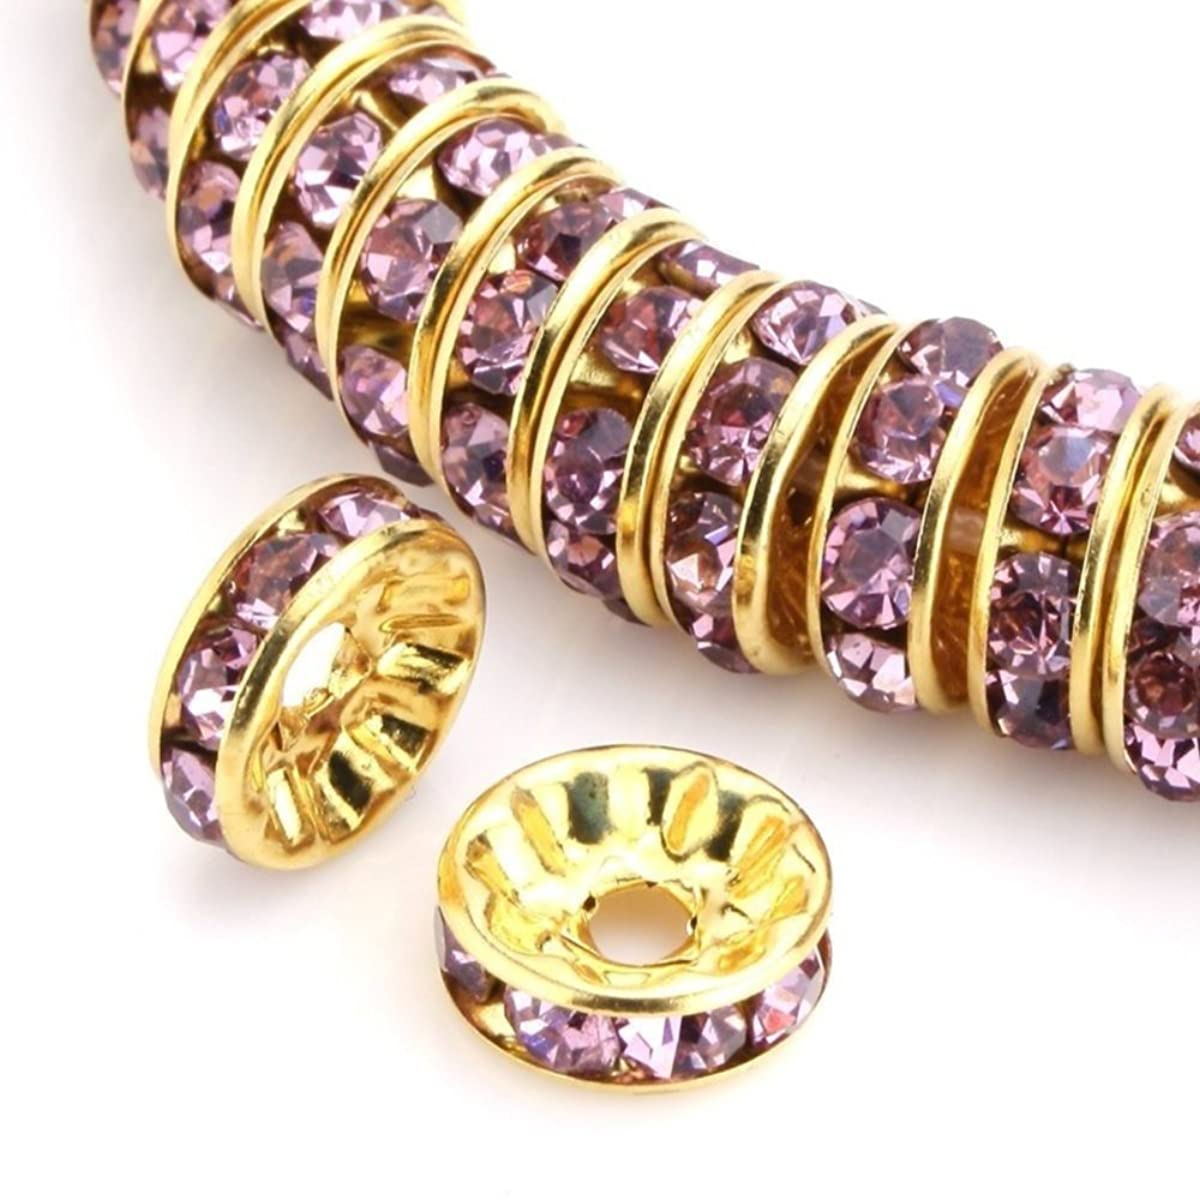 100pcs 8mm 14k Gold Plated Copper Brass Rondelle Spacer Round Loose Beads Light Amethyst Austrian Crystal Rhinestone for Jewelry Crafting Making CF4-811